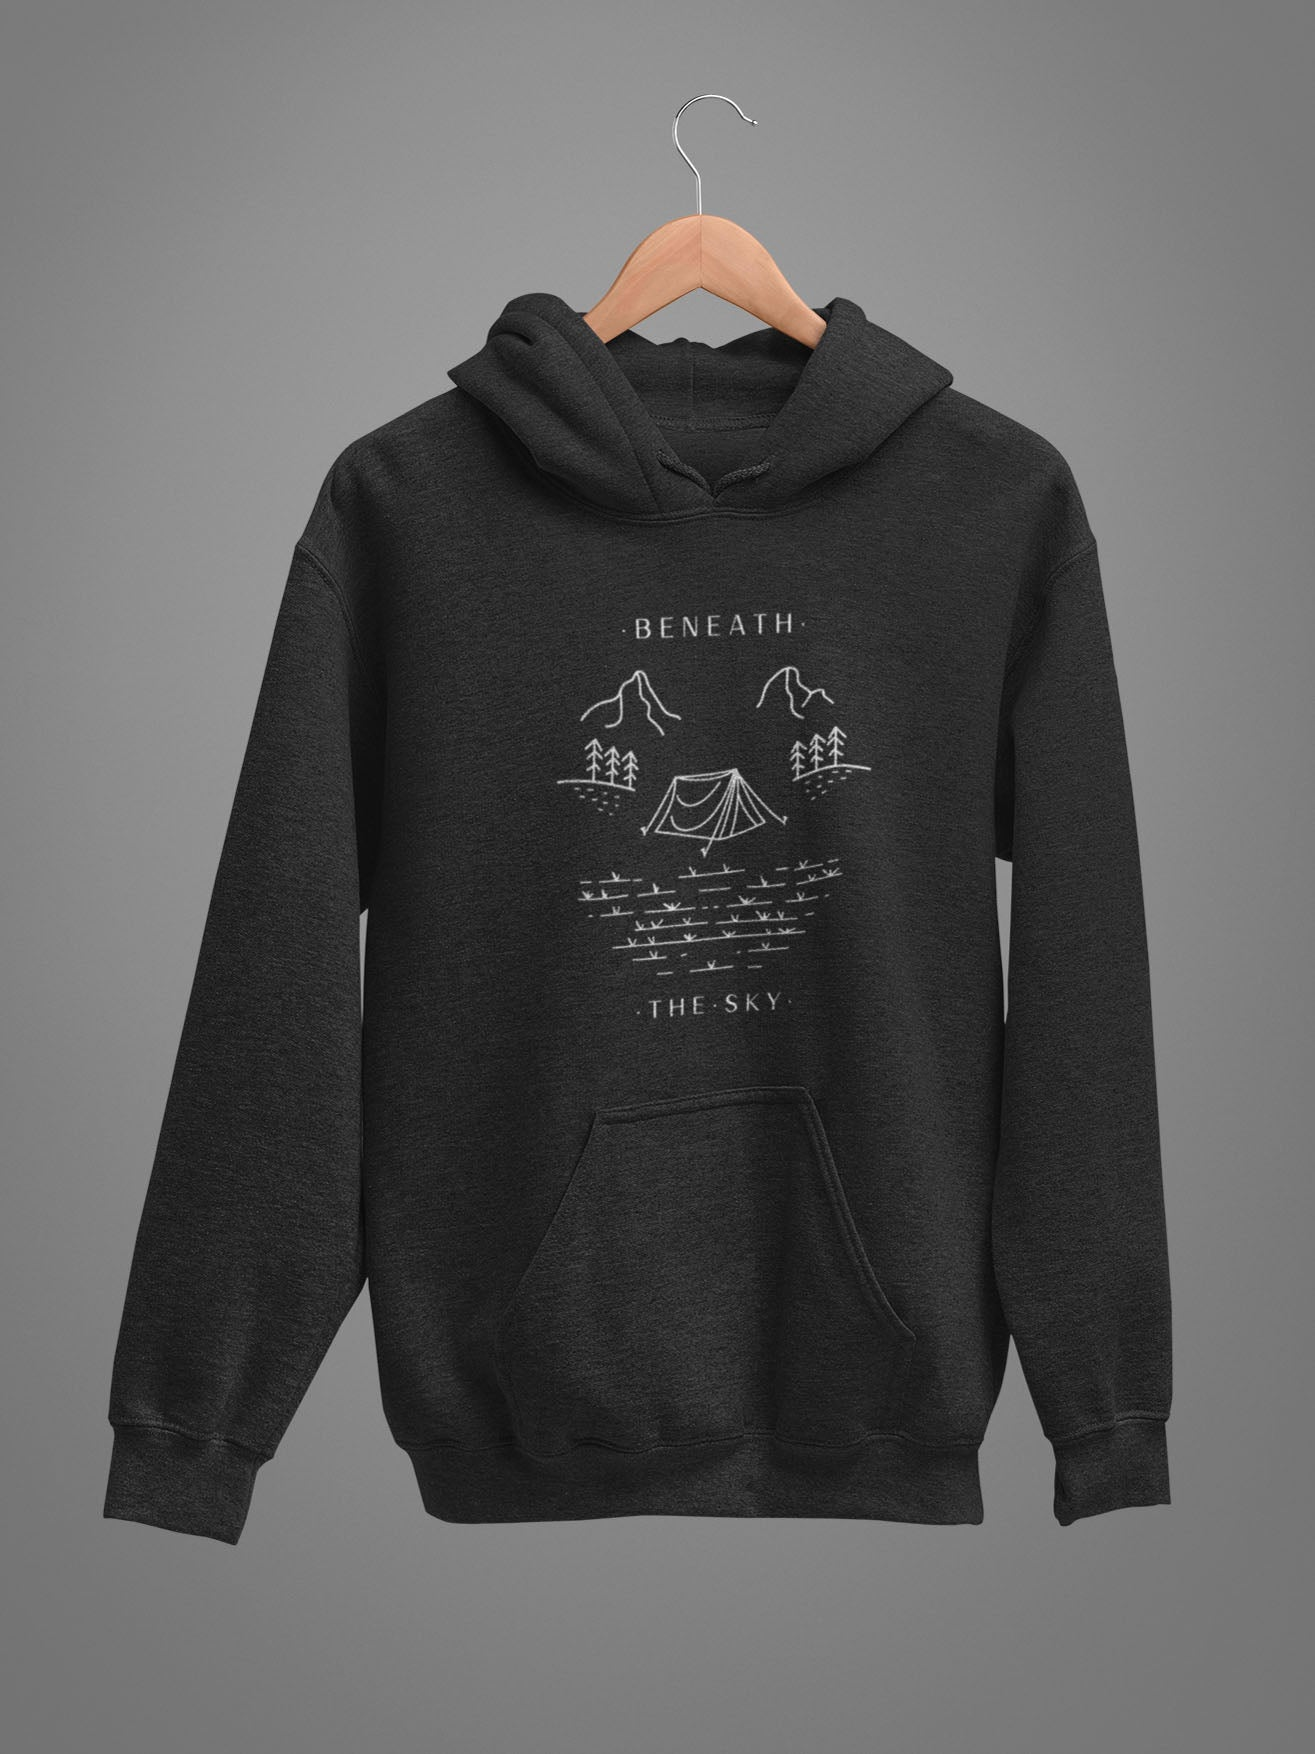 Beneath The Sky Unisex Hoodie